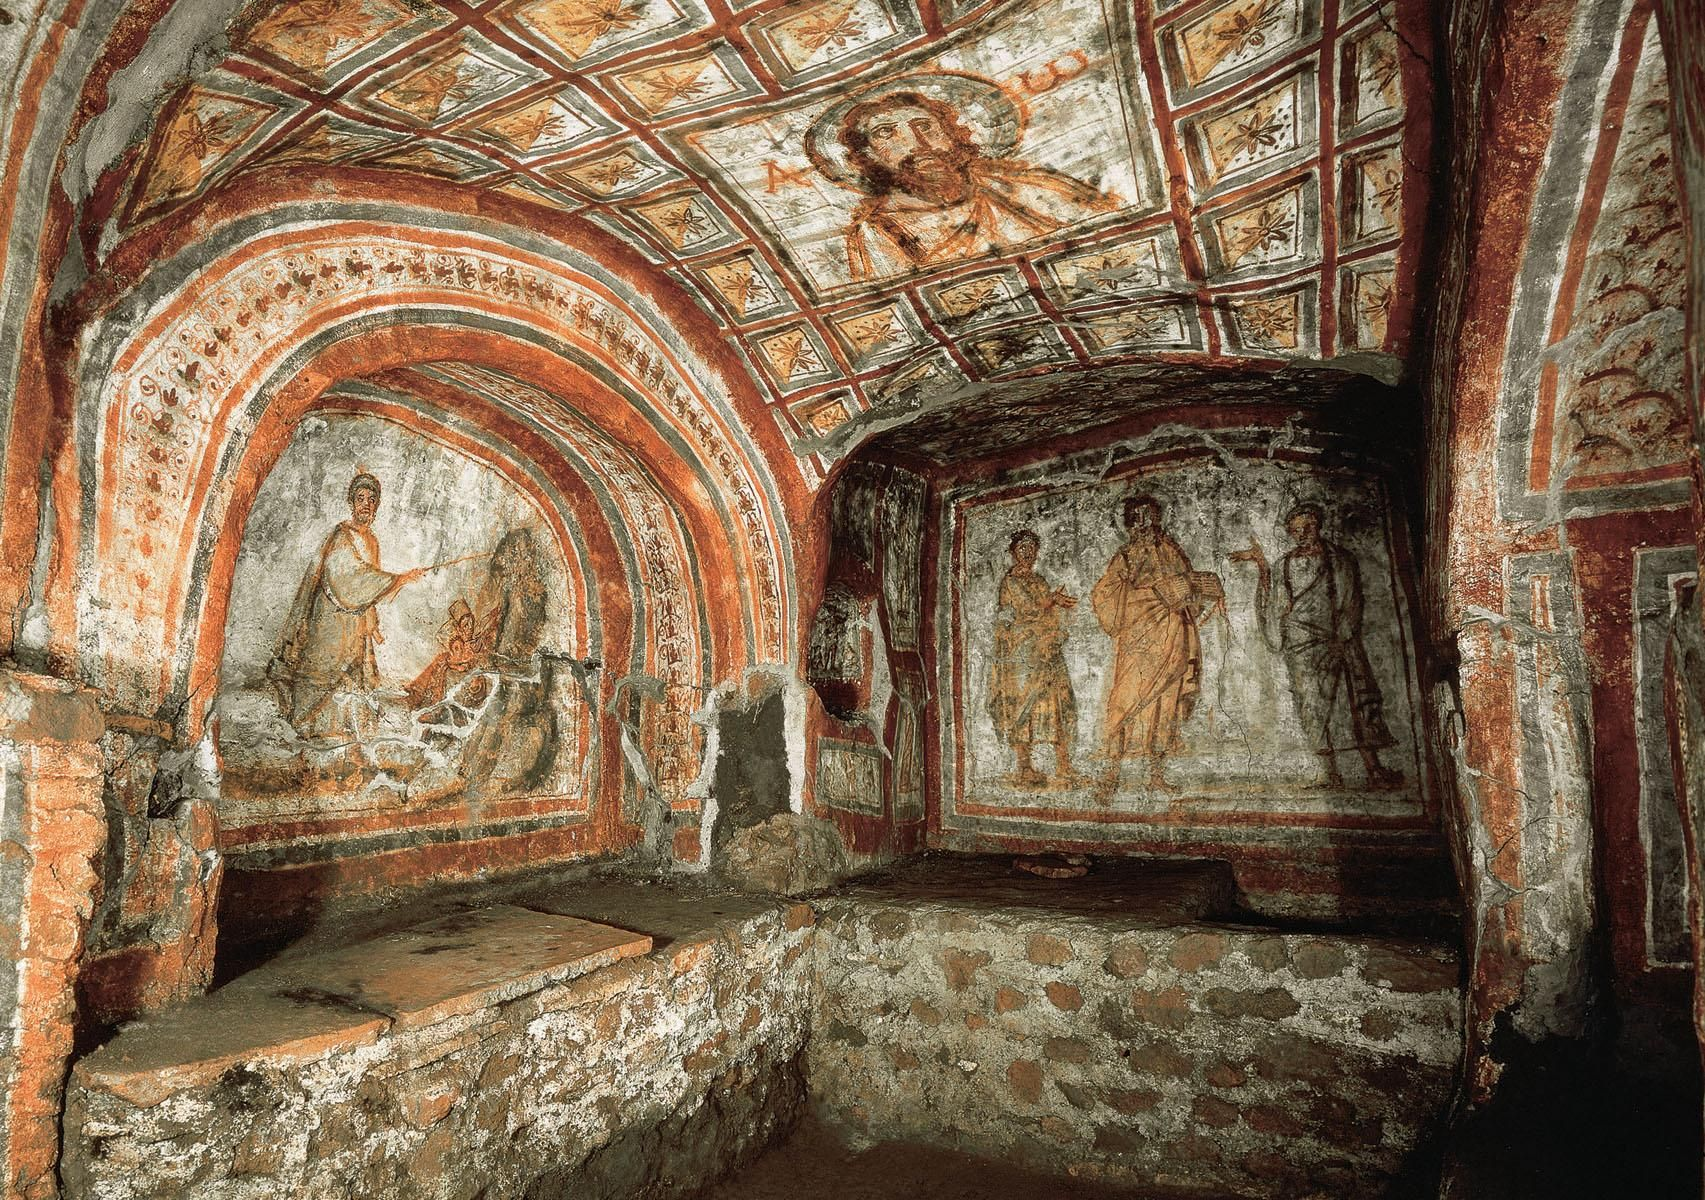 Catacombes de Saint Domitilla